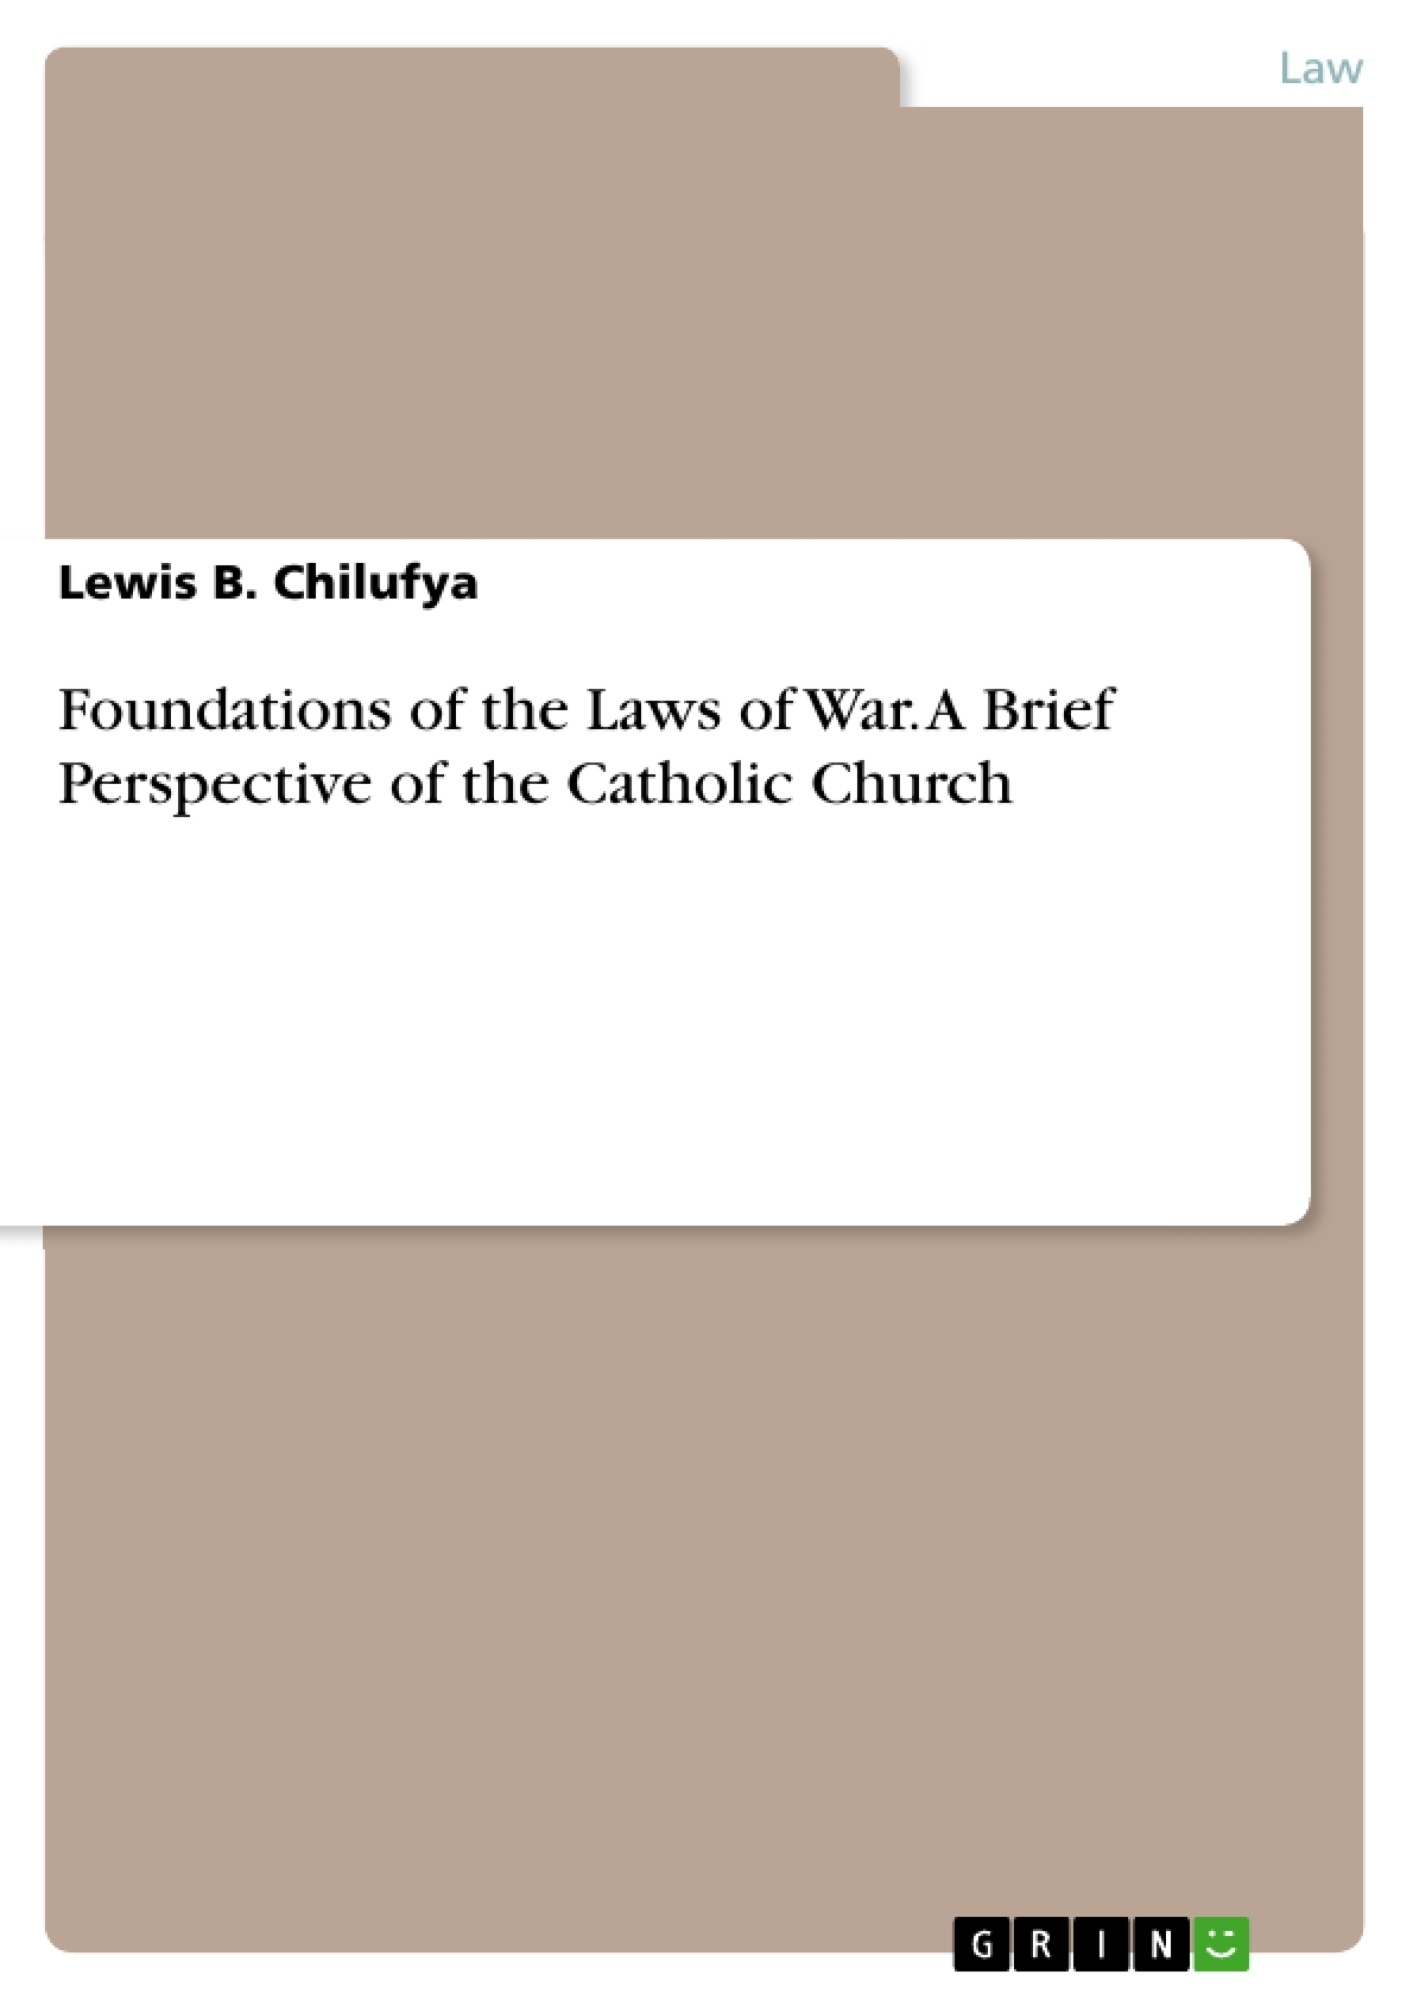 Title: Foundations of the Laws of War. A Brief Perspective of the Catholic Church